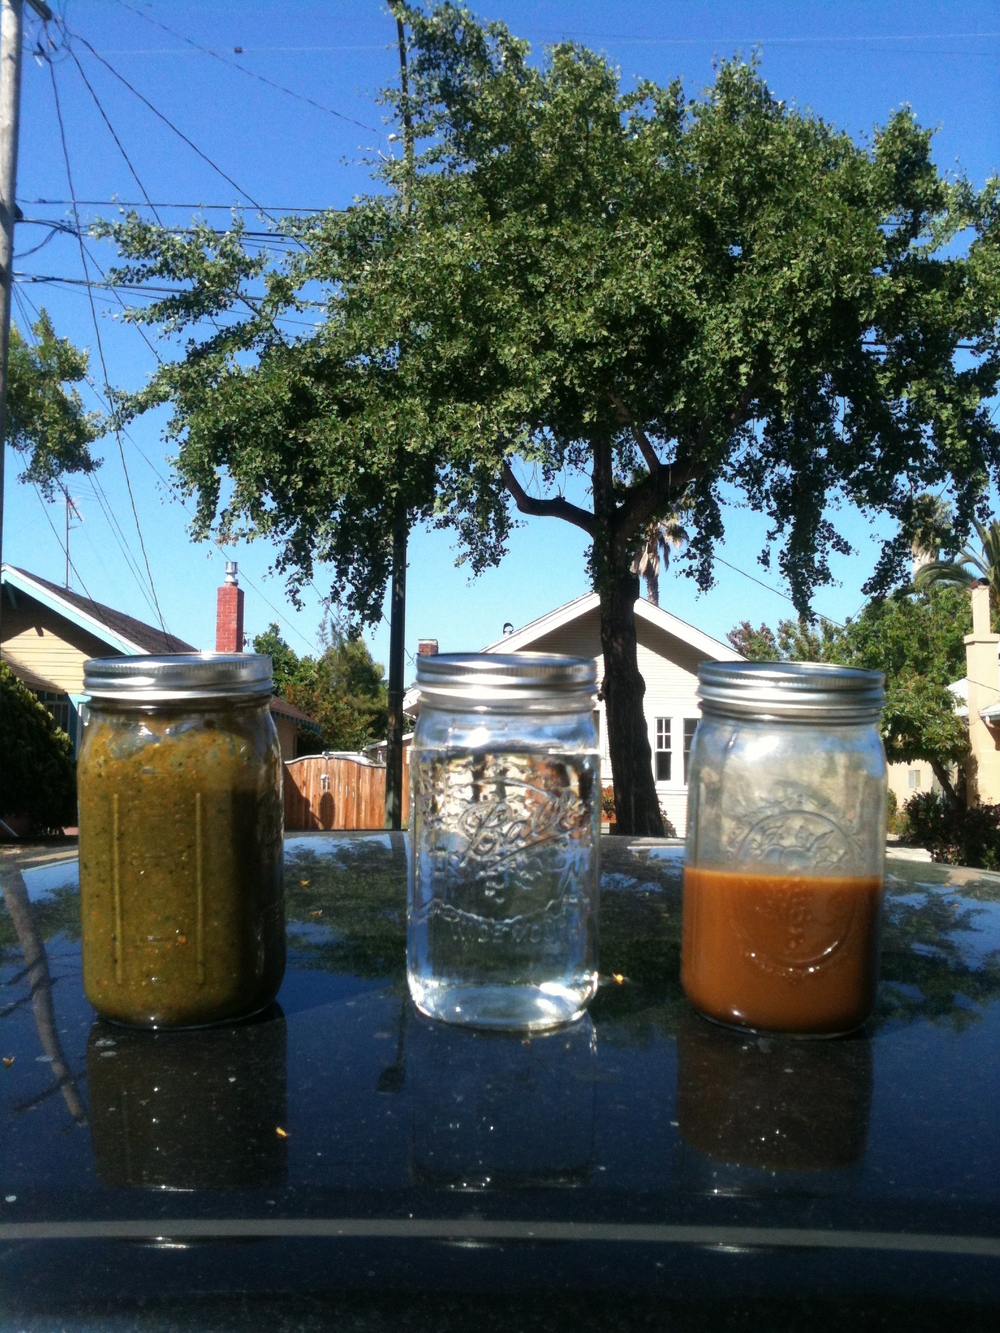 I headed up to Sacramento on June 1st to drop off and install the work. My boyfriend sent me off with some necessary liquids. Here are some mason jars of green juice, water and coffee for the ride up.